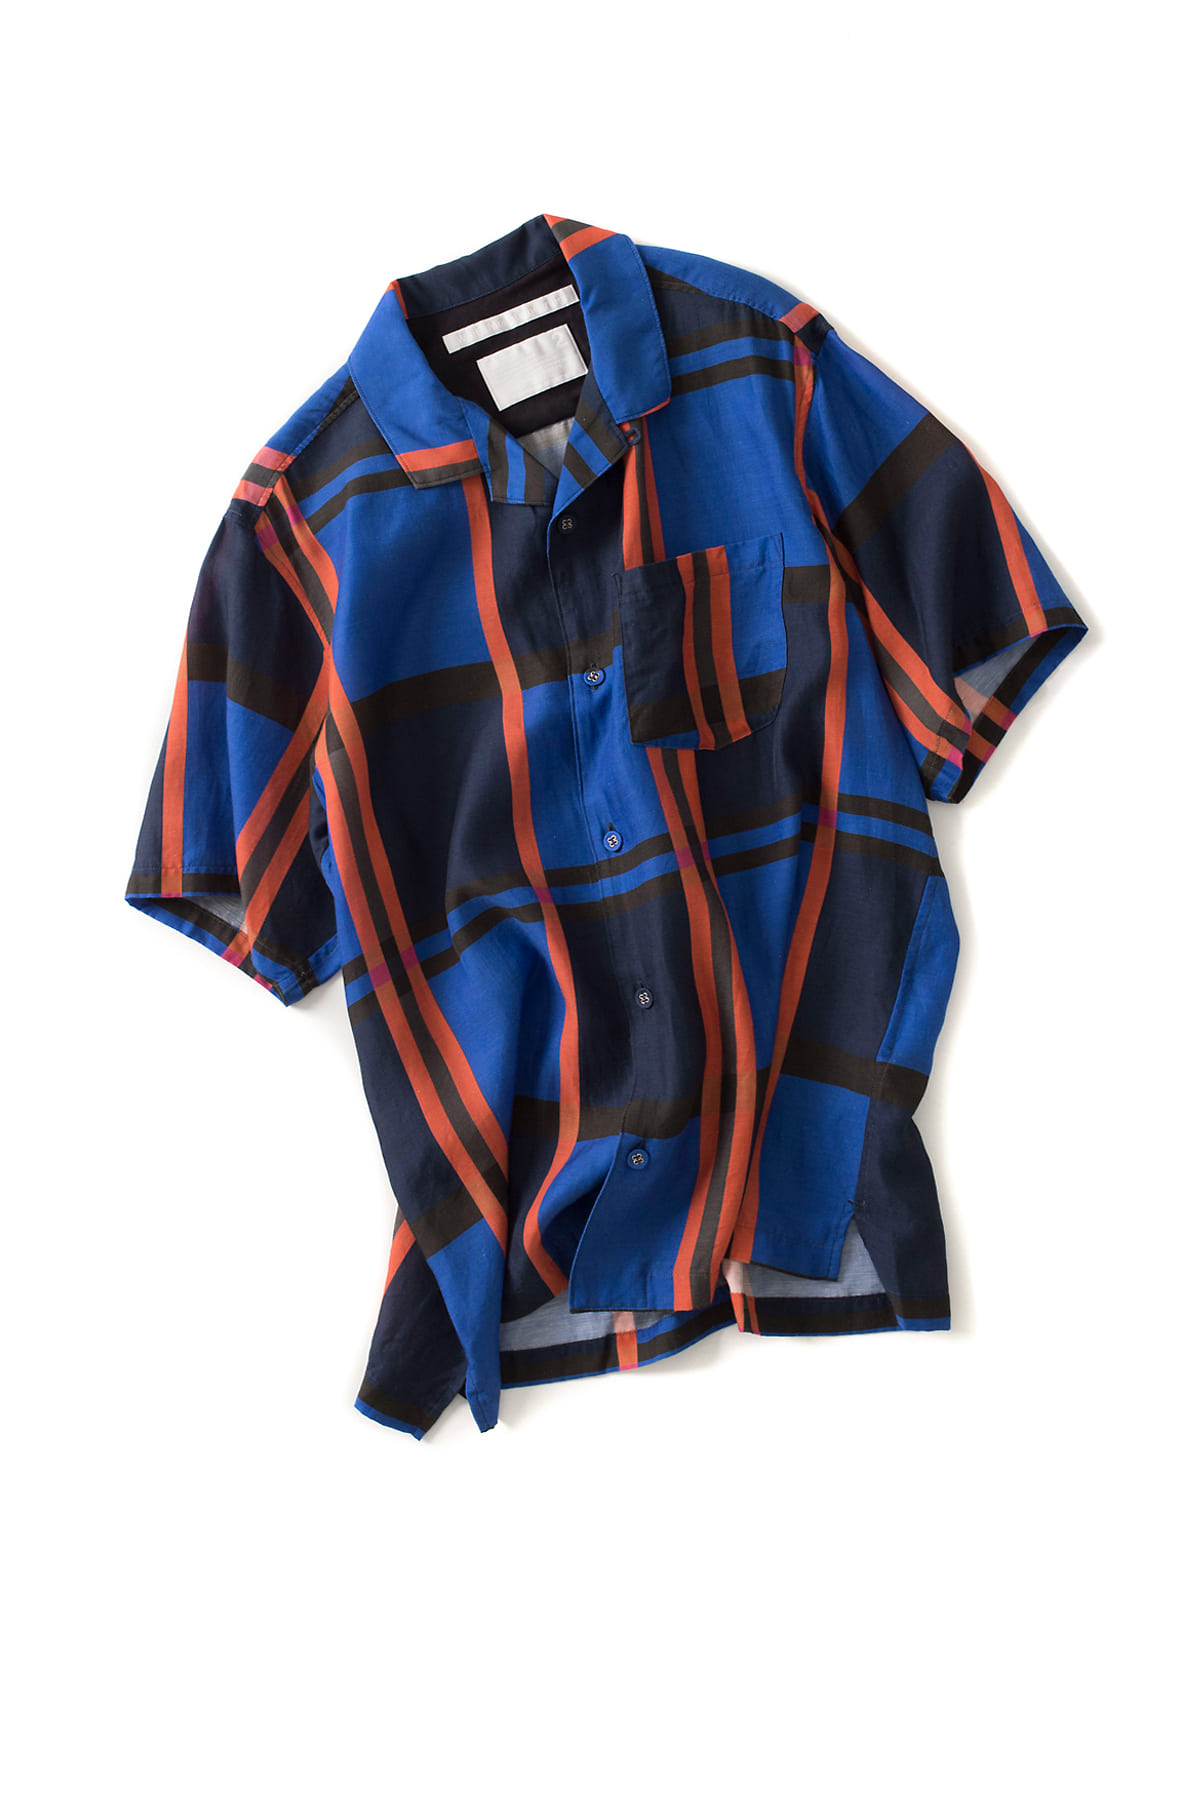 WHITE MOUNTAINEERING : Blue Large Check Printed Open Collar (Check)